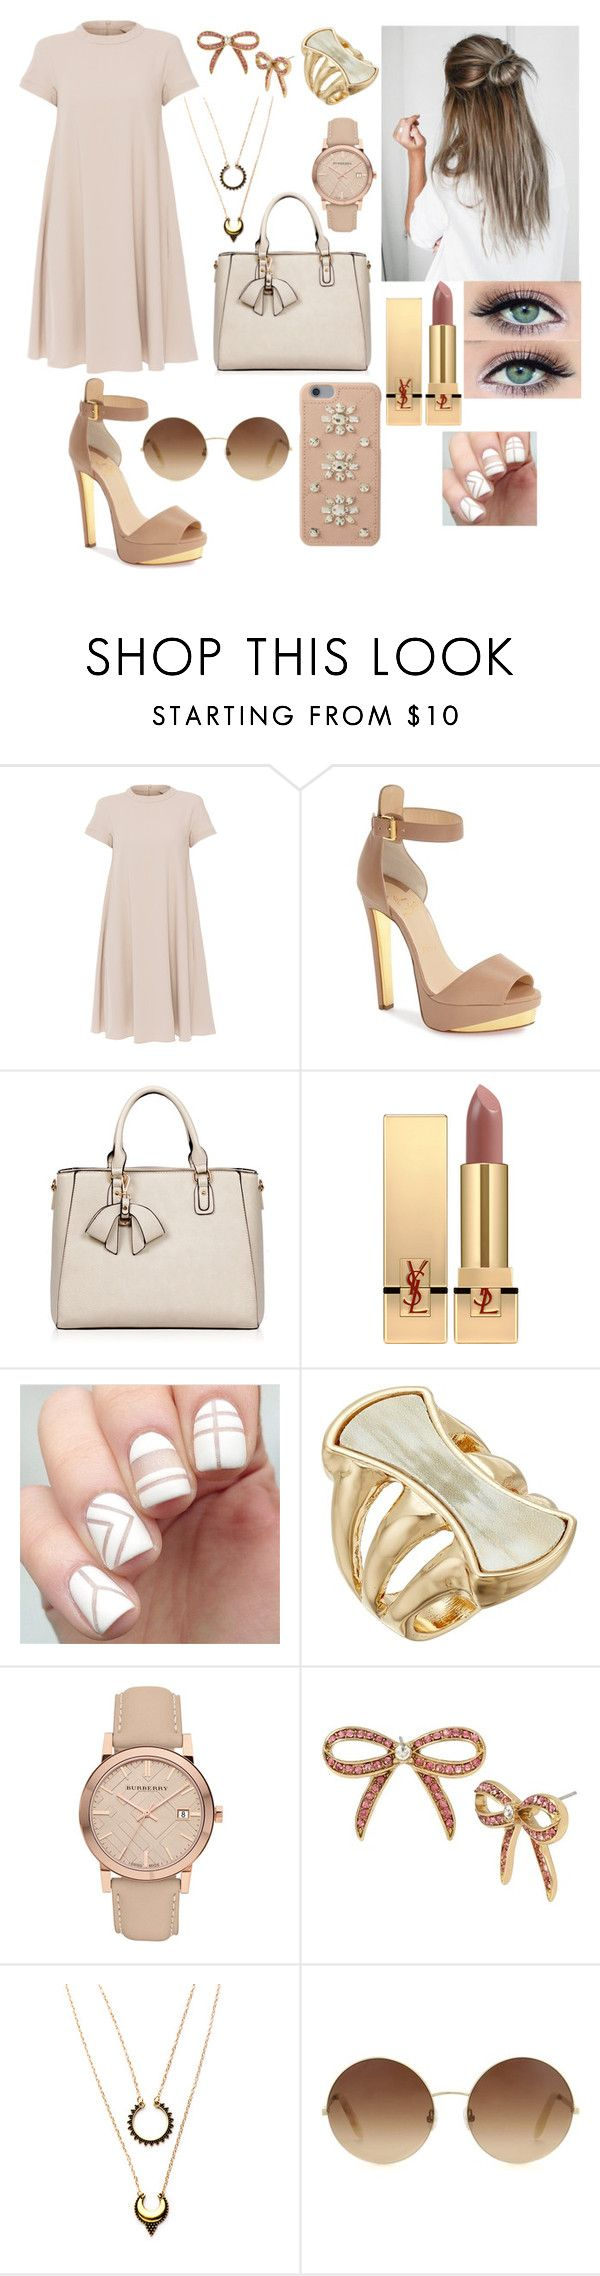 """Untitled #75"" by rugiledamaseviciute on Polyvore featuring beauty, 'S MaxMara, Christian Louboutin, Yves Saint Laurent, Robert Lee Morris, Burberry, Betsey Johnson, WithChic, Victoria Beckham and MICHAEL Michael Kors"